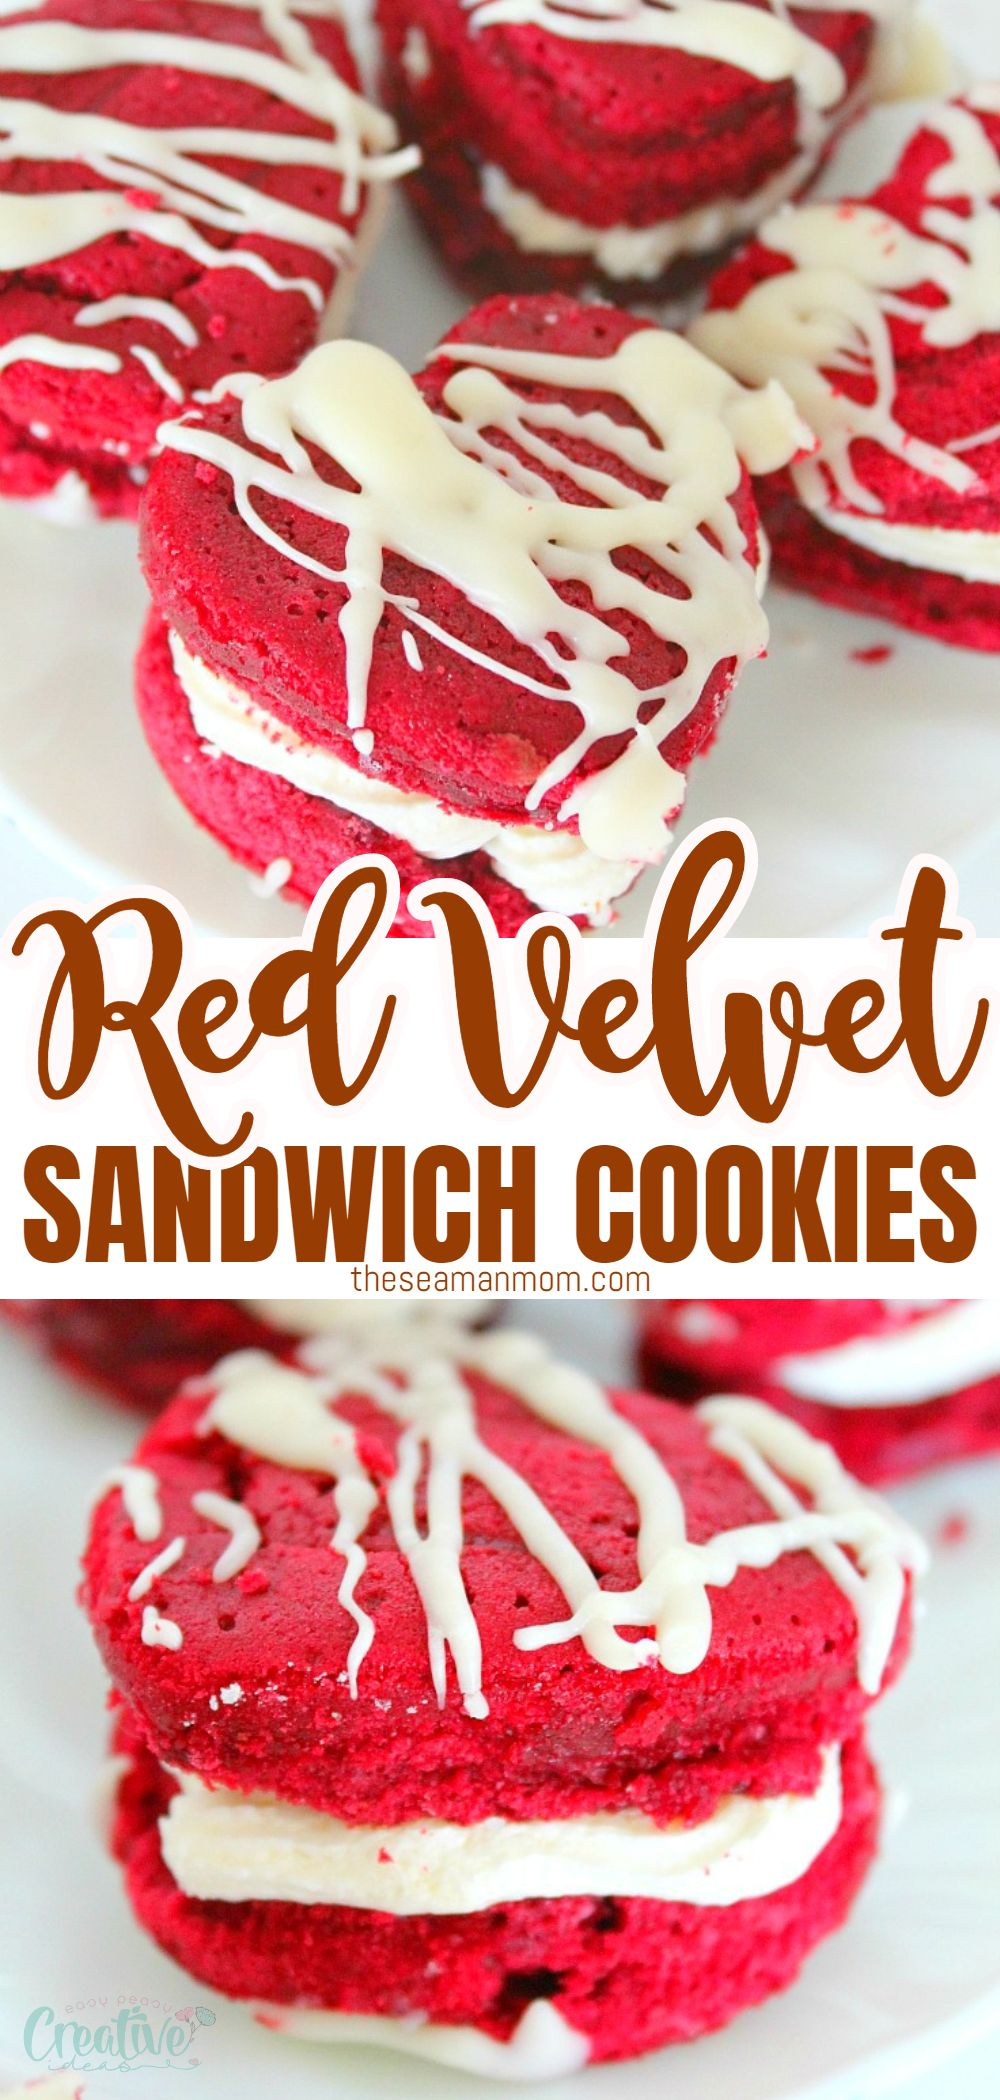 Make Valentine's Day even sweeter with these easy, adorable and delicious red velvet sandwich cookies! Two layers of rich red velvet cake filled with decadent coconut cream cheese frosting! via @petroneagu